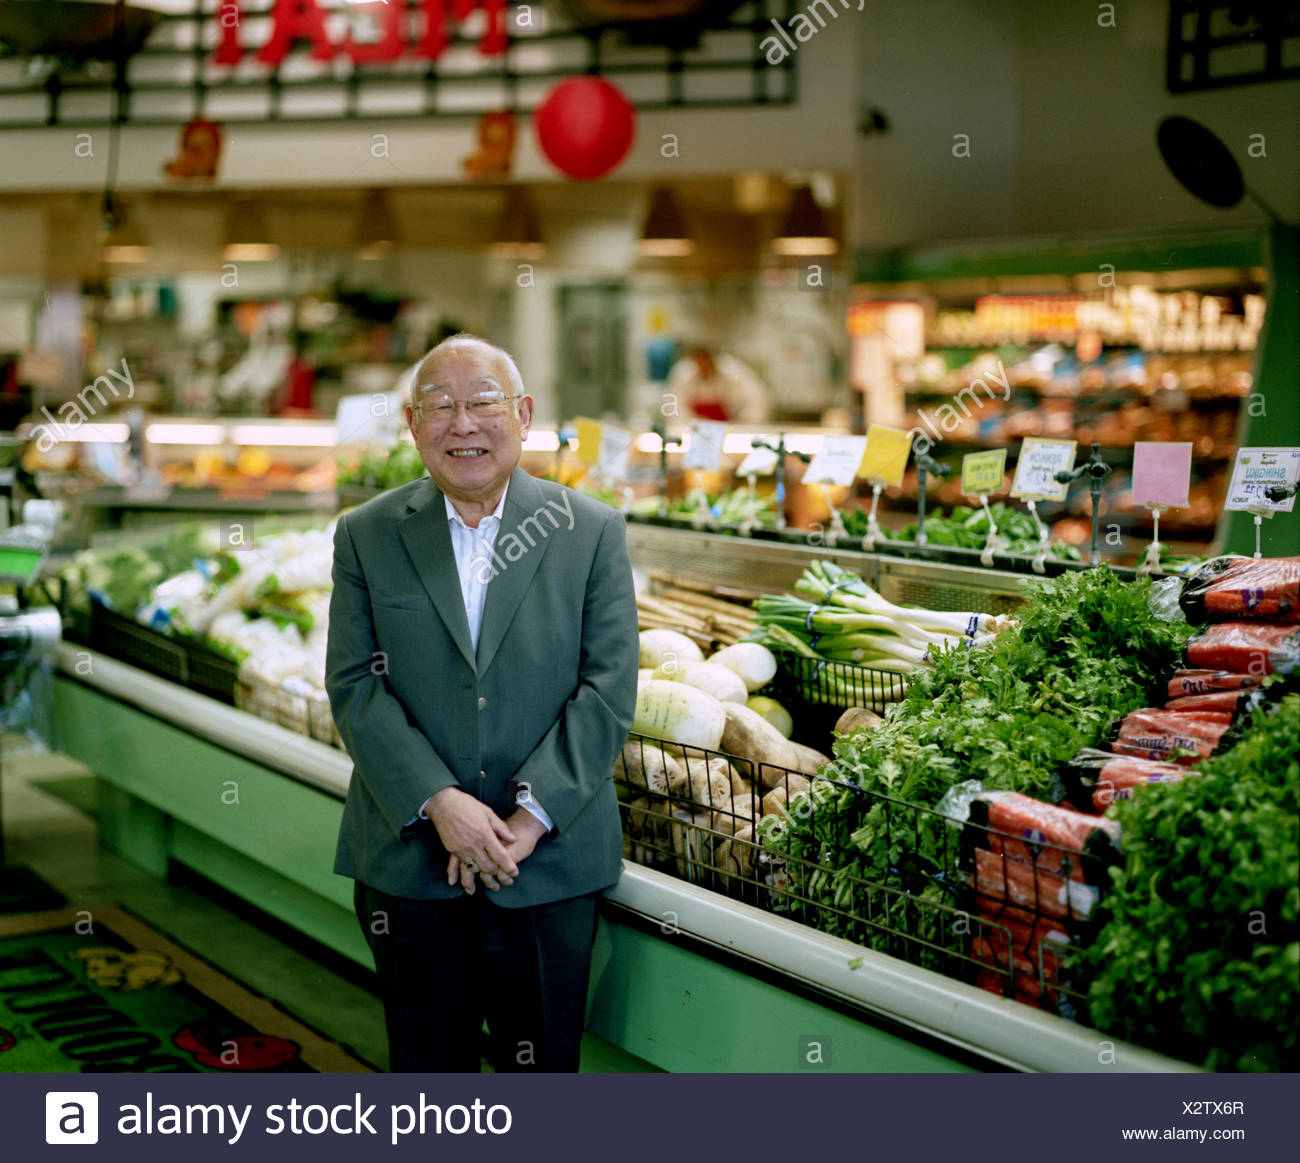 A portrait of an owner of a large grocery store standing in an aisle looking at the camera. - Stock Image